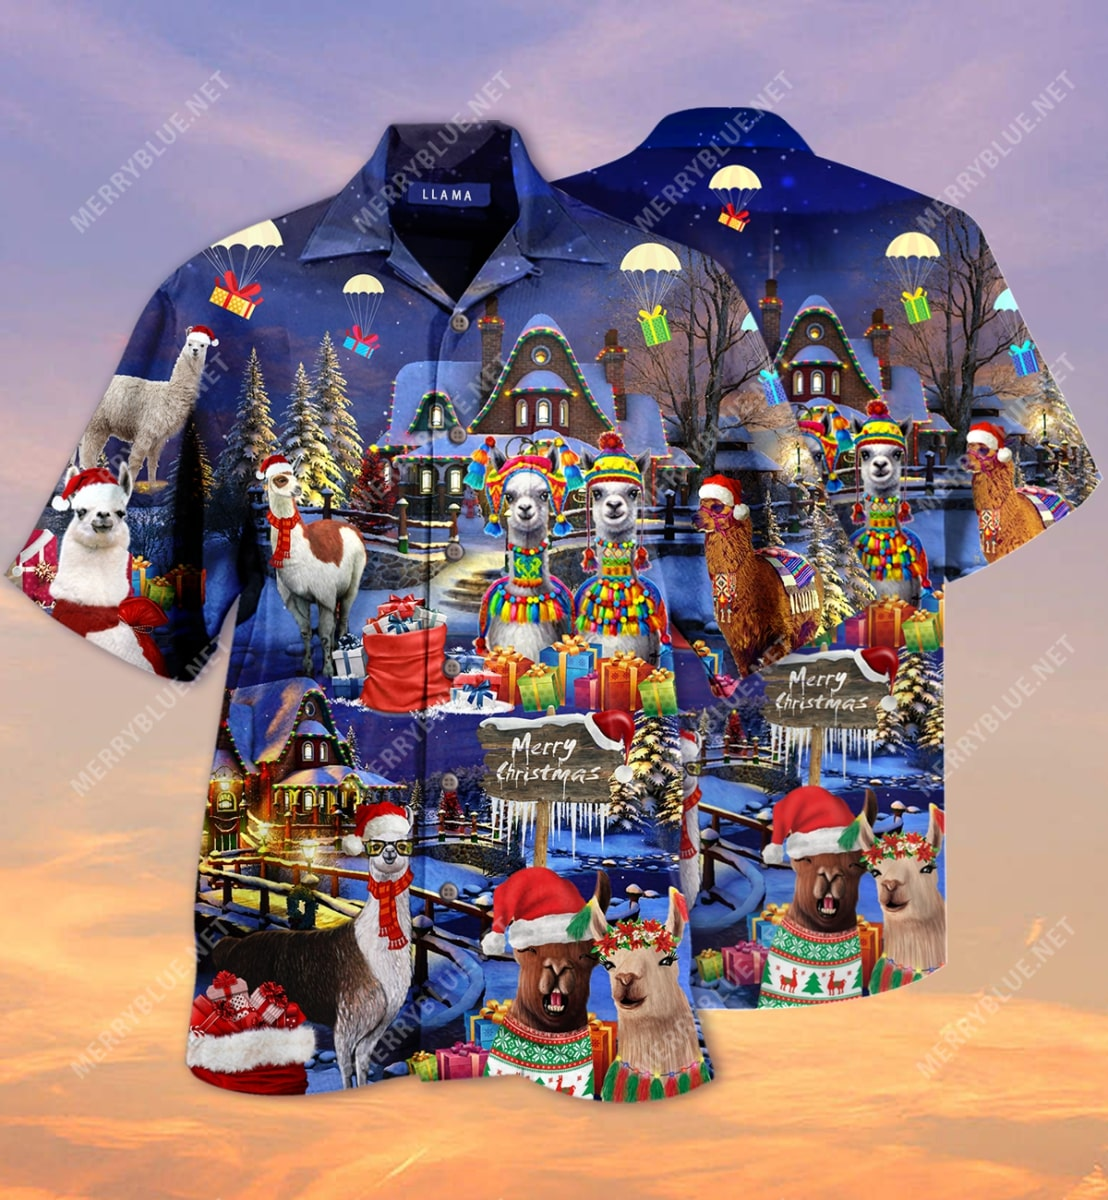 fa la la llama and merry christmas full printing hawaiian shirt 3